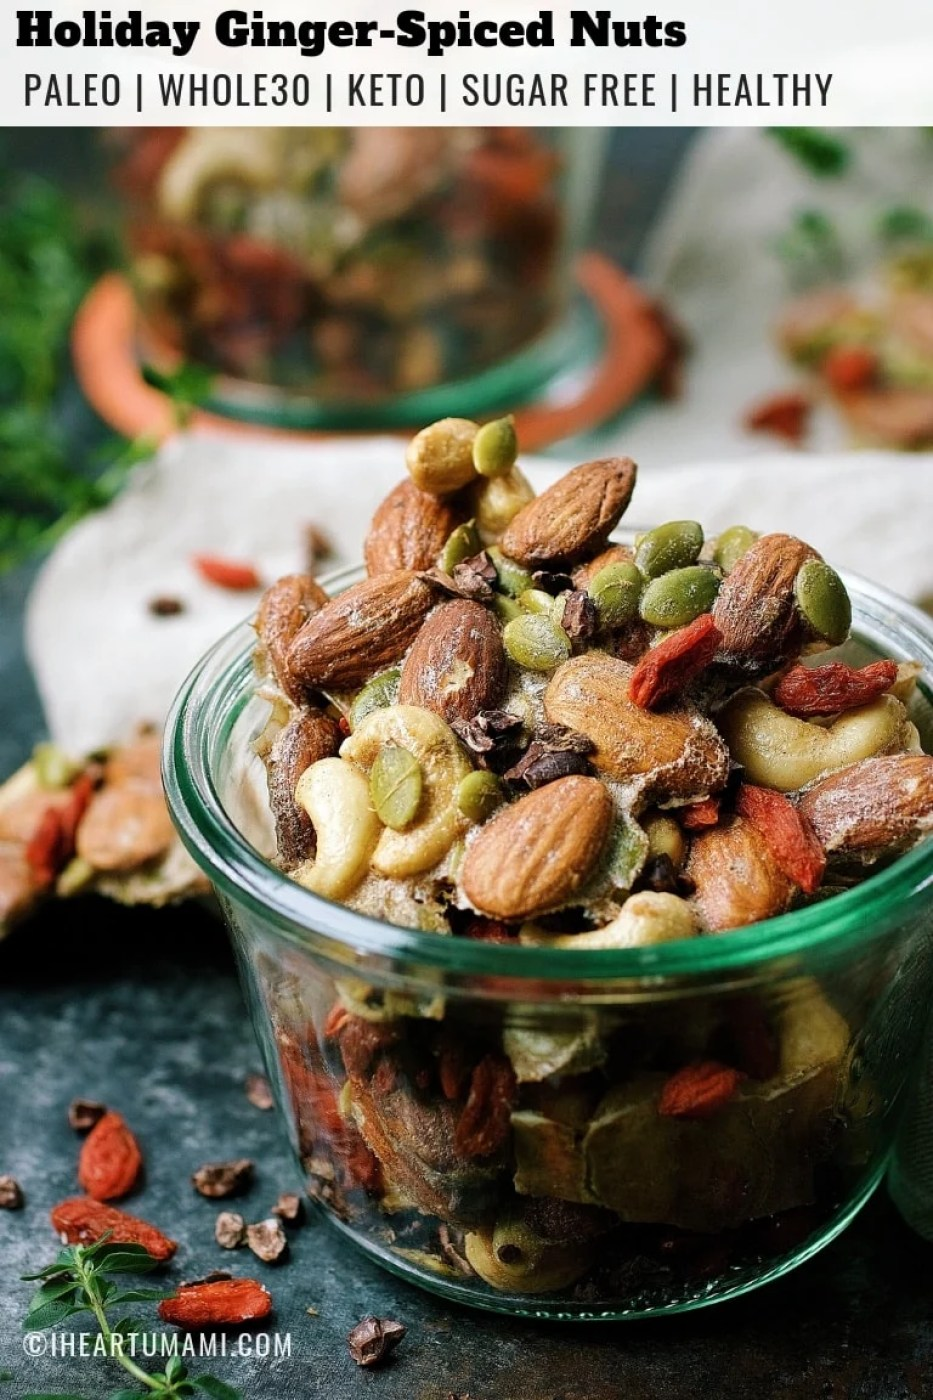 Paleo Ginger Spiced Mixed Nuts for healthy holiday homemade gifts!